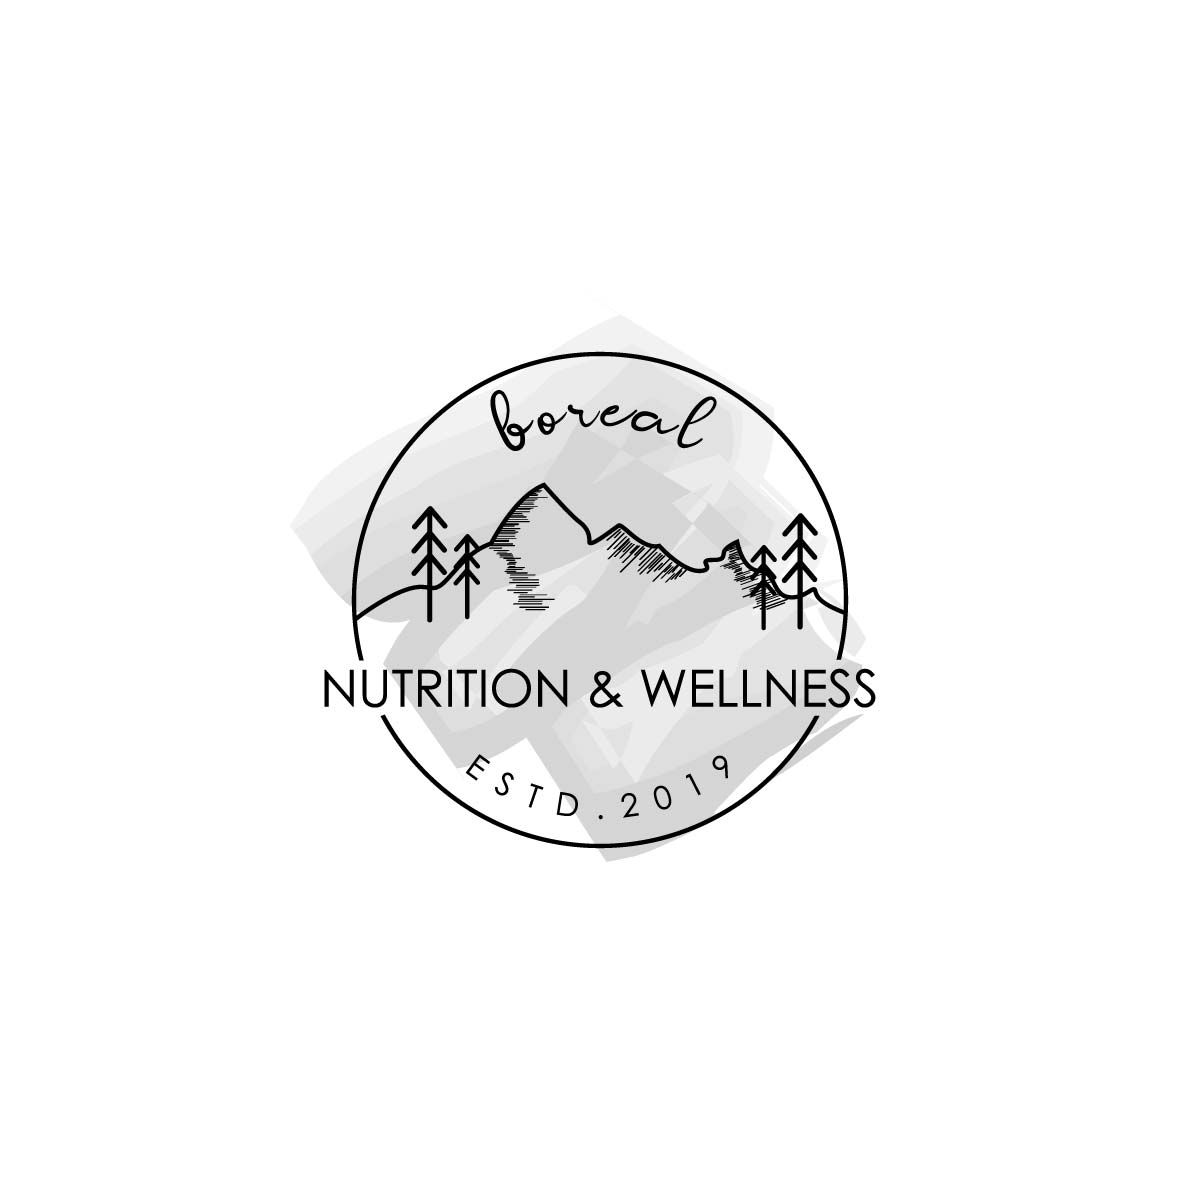 Hand Drawn Mountain logo for a Nutrition and Wellness company by hih7